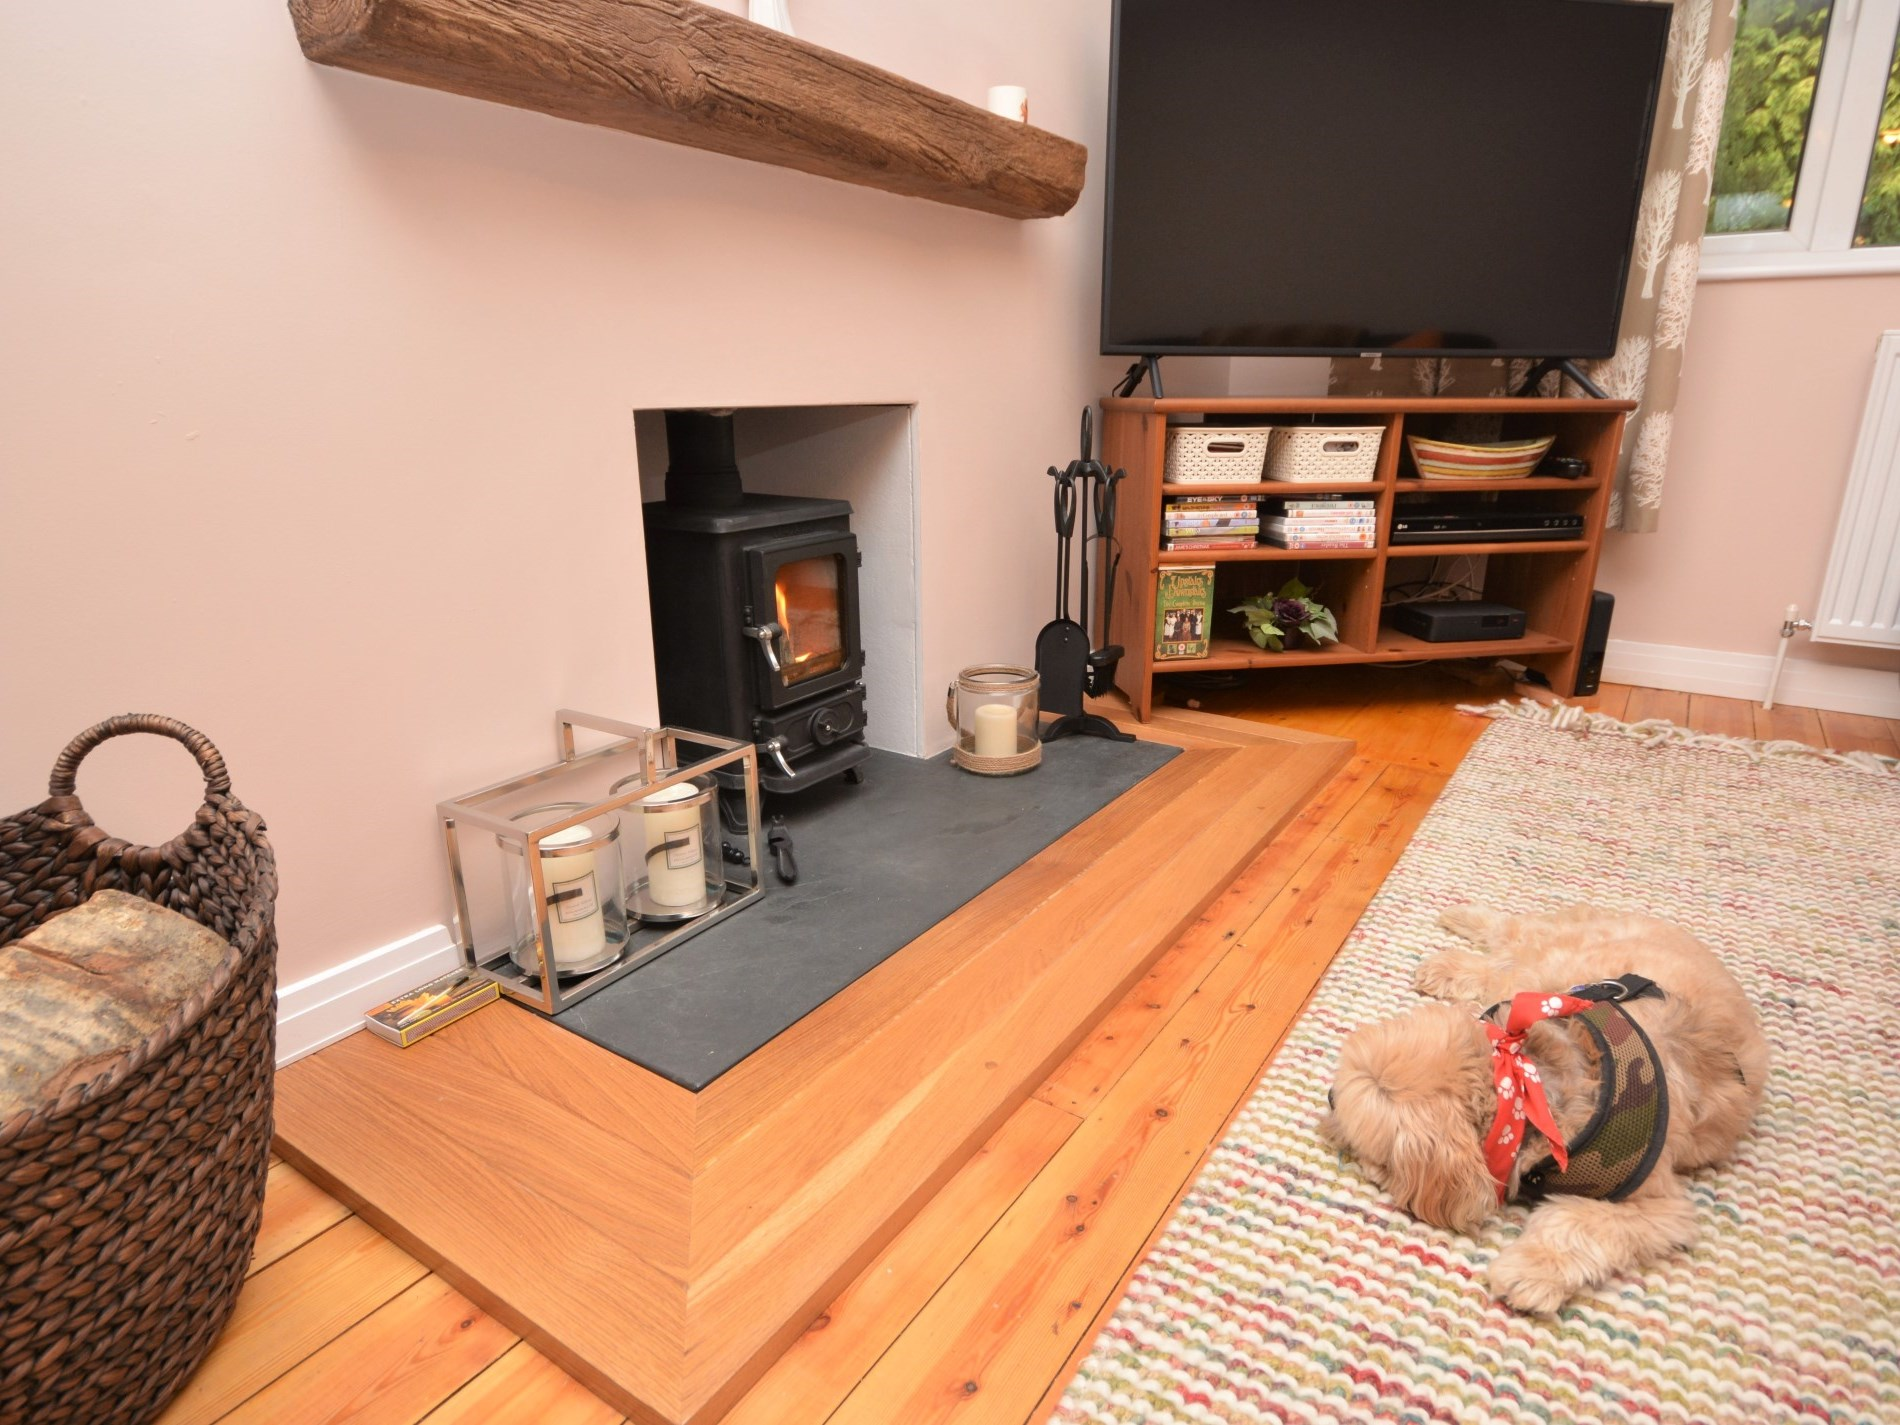 3 Bedroom Cottage in Exeter, Devon